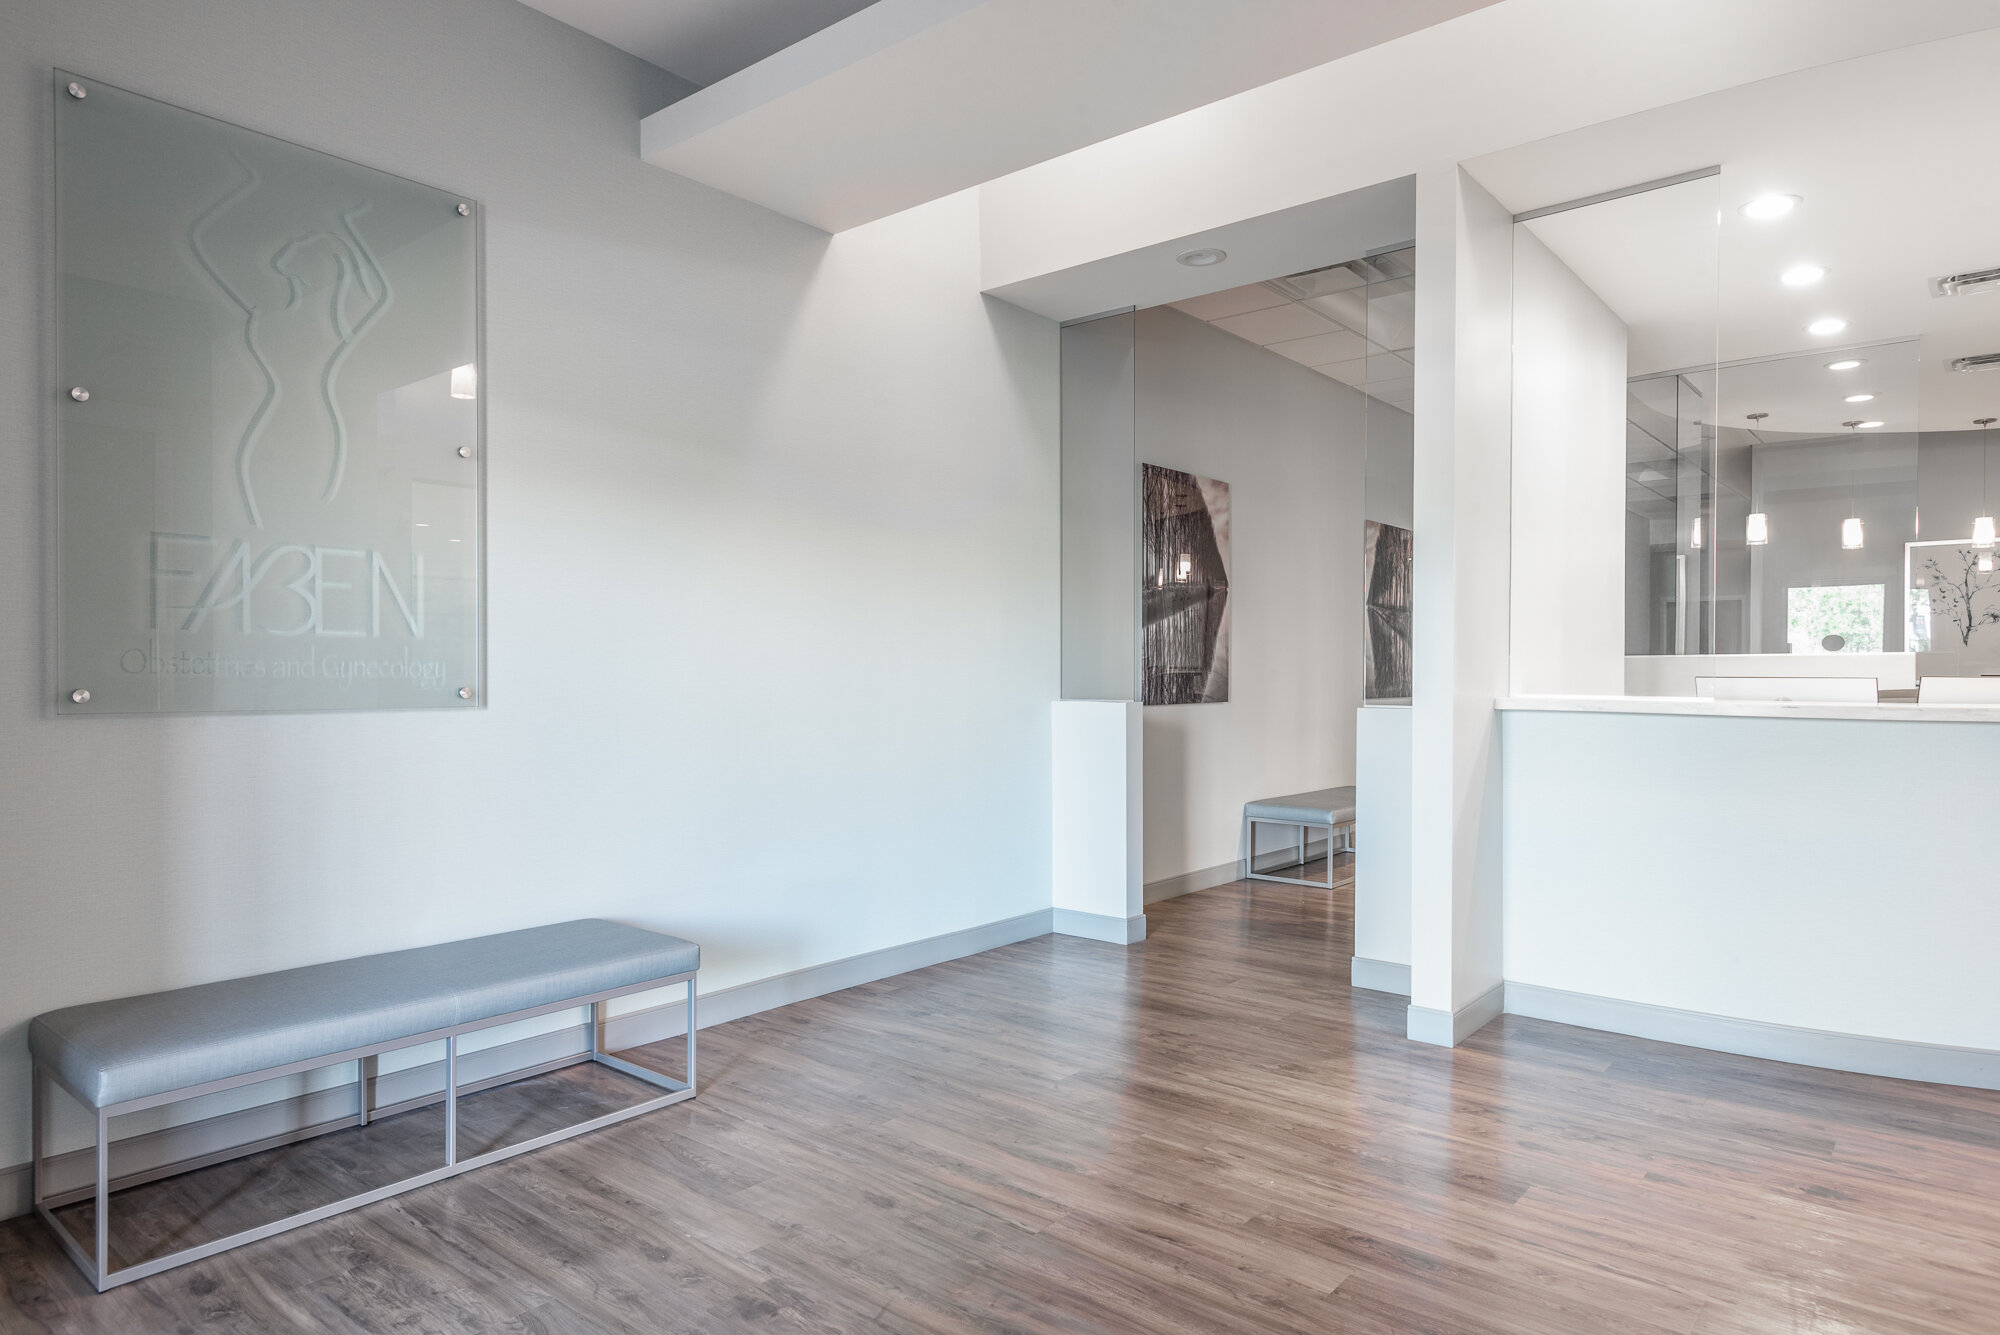 Micamy Design Studio_Interior Design_Faben Obstetrics and Gynelcology_North Florida_Riverplace_San Marco_Healthcare_Office_Medical_Trwobridge_Reception_Patcraft_Waterfall_Entry (5).jpg